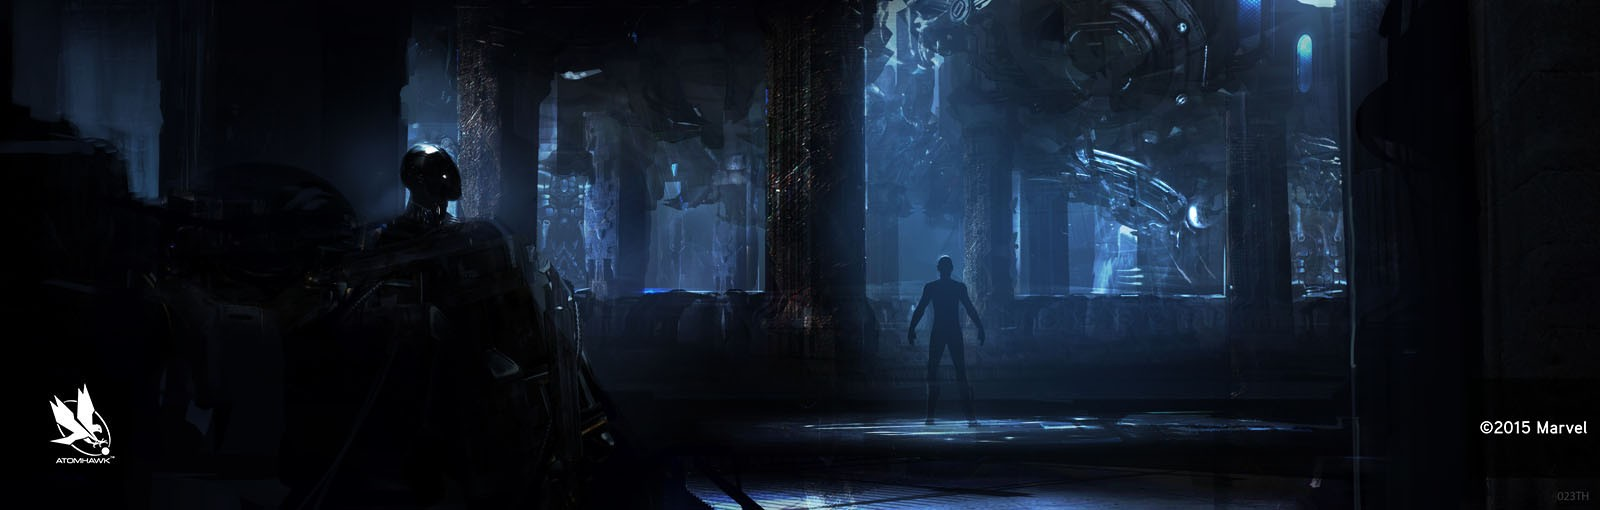 Avengers Age Of Ultron Project - Concept Art and Environment Design - Fortress Factory Level 5